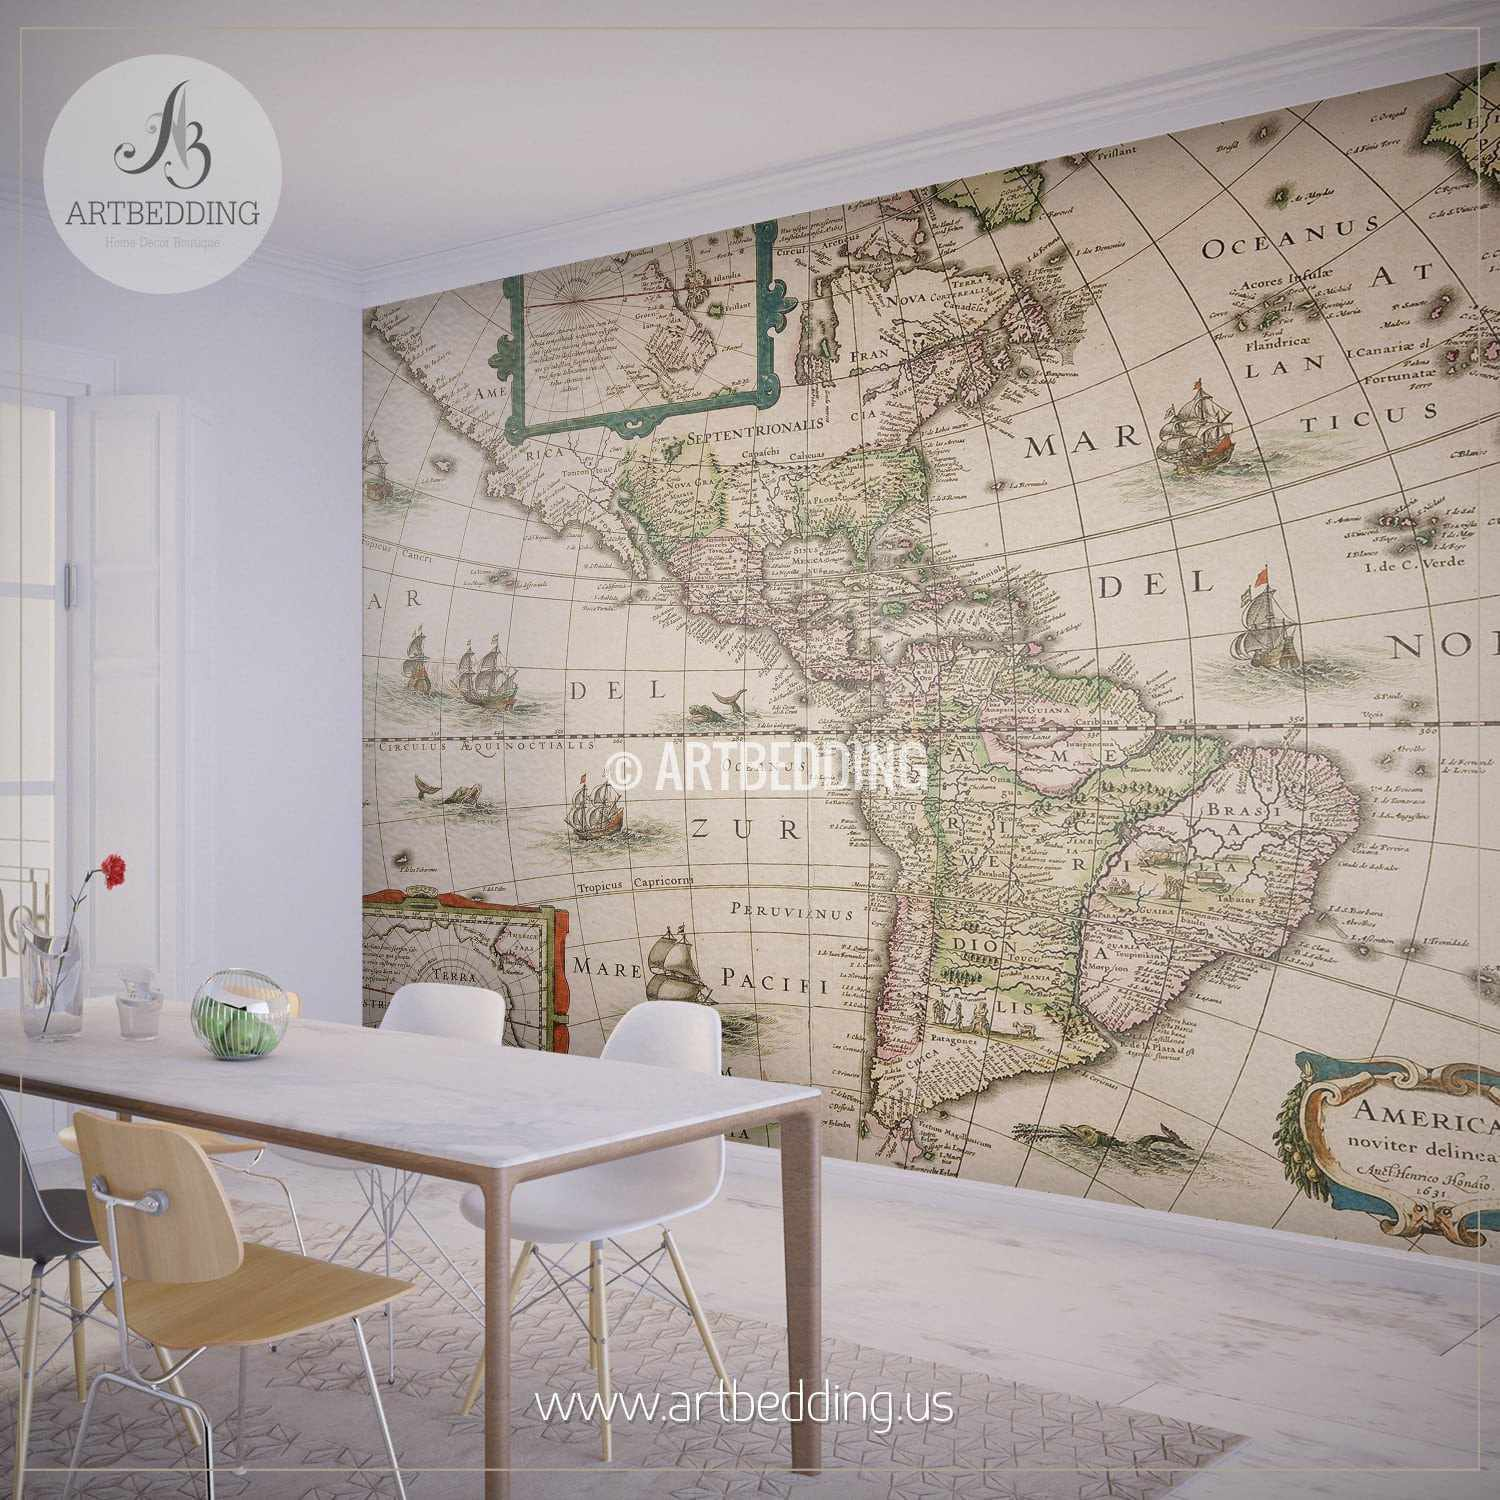 America Map Dated 1631 Wall Mural Self Adhesive Peel Stick Photo Mural Atlas